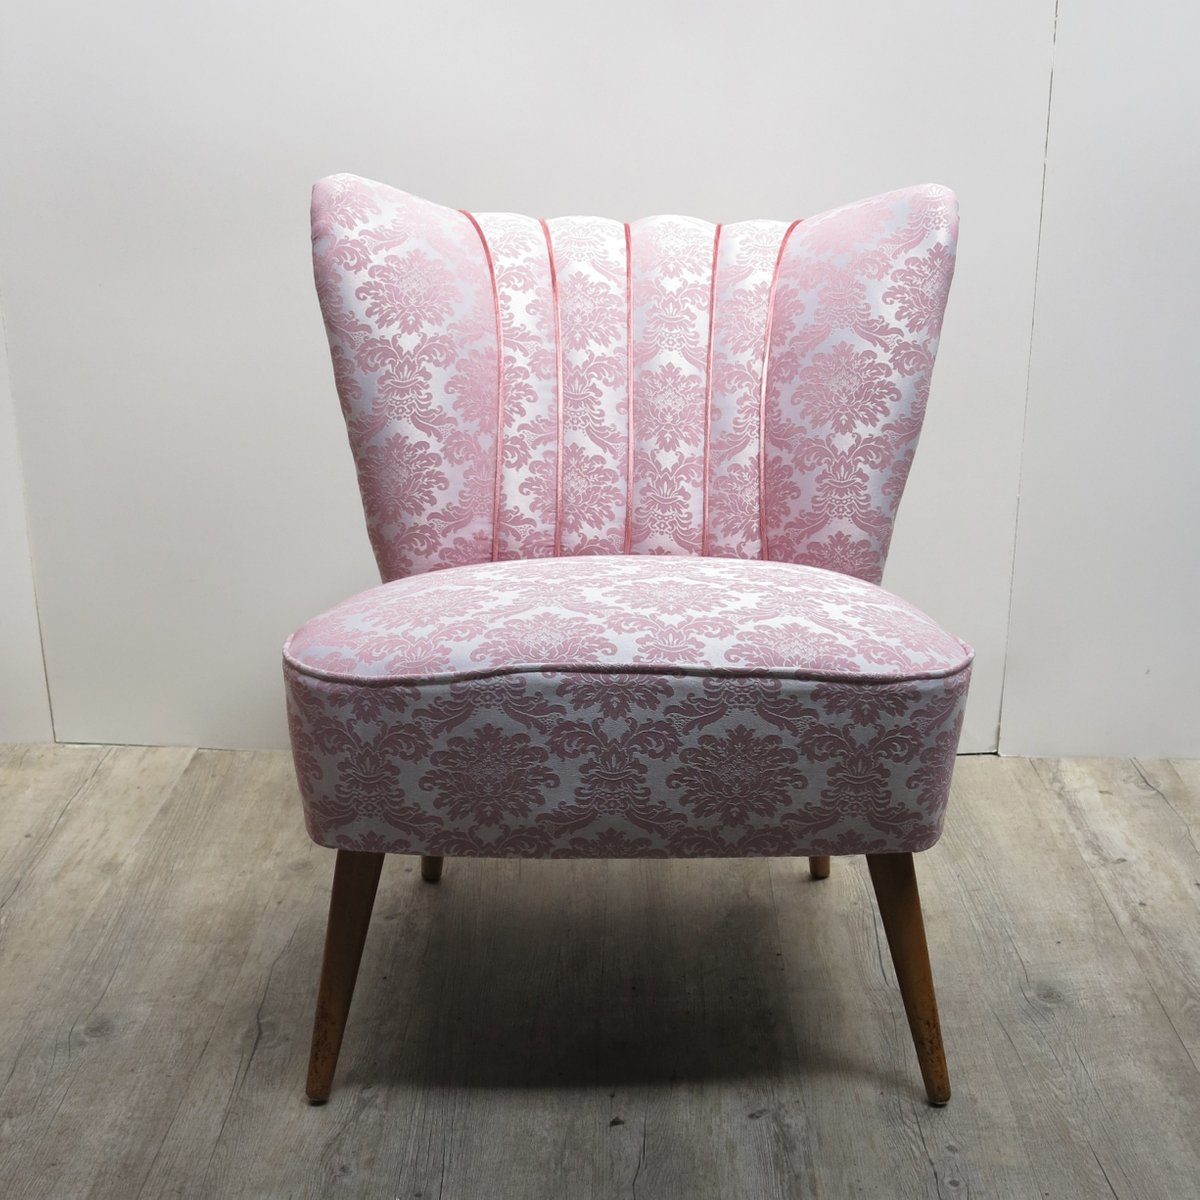 Mid Century Chairs For Sale: Mid-Century Pink Cocktail Chair With Wooden Legs For Sale